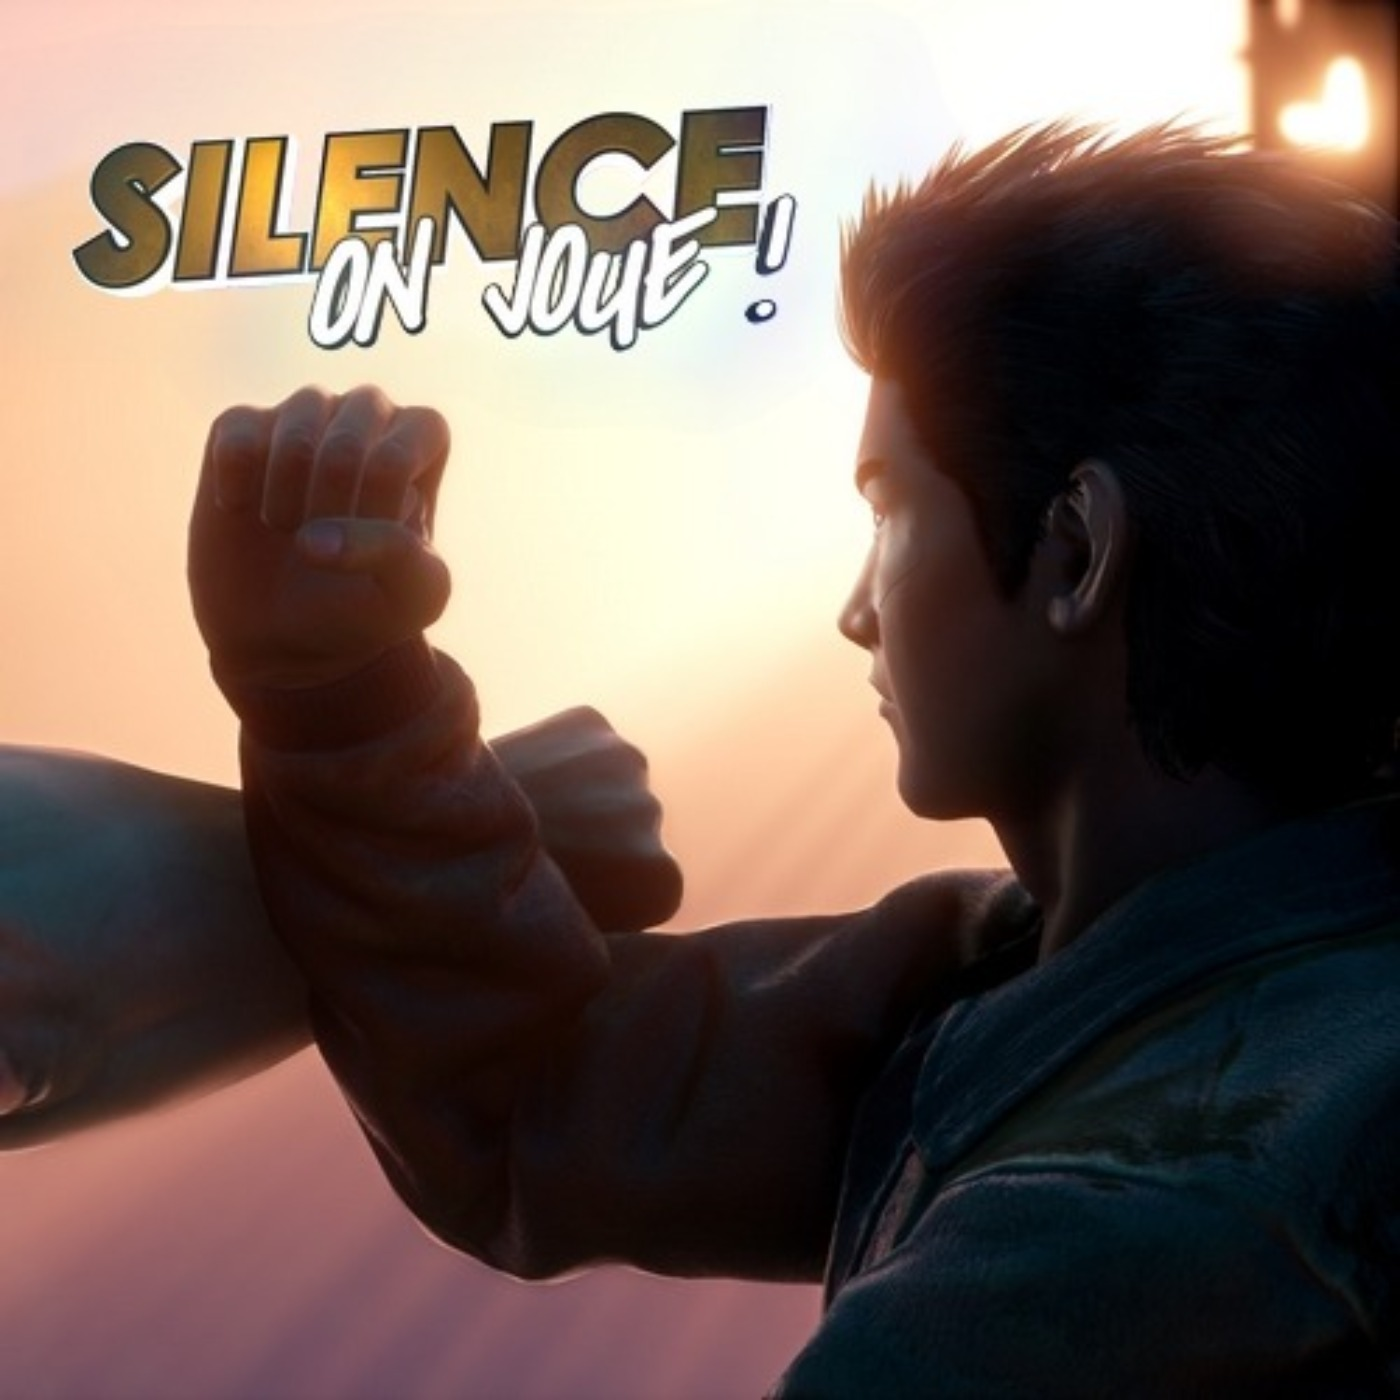 Silence on joue ! «Death & Taxes», «Shenmue III», «The Blind Prophet», «Puppy Cross»